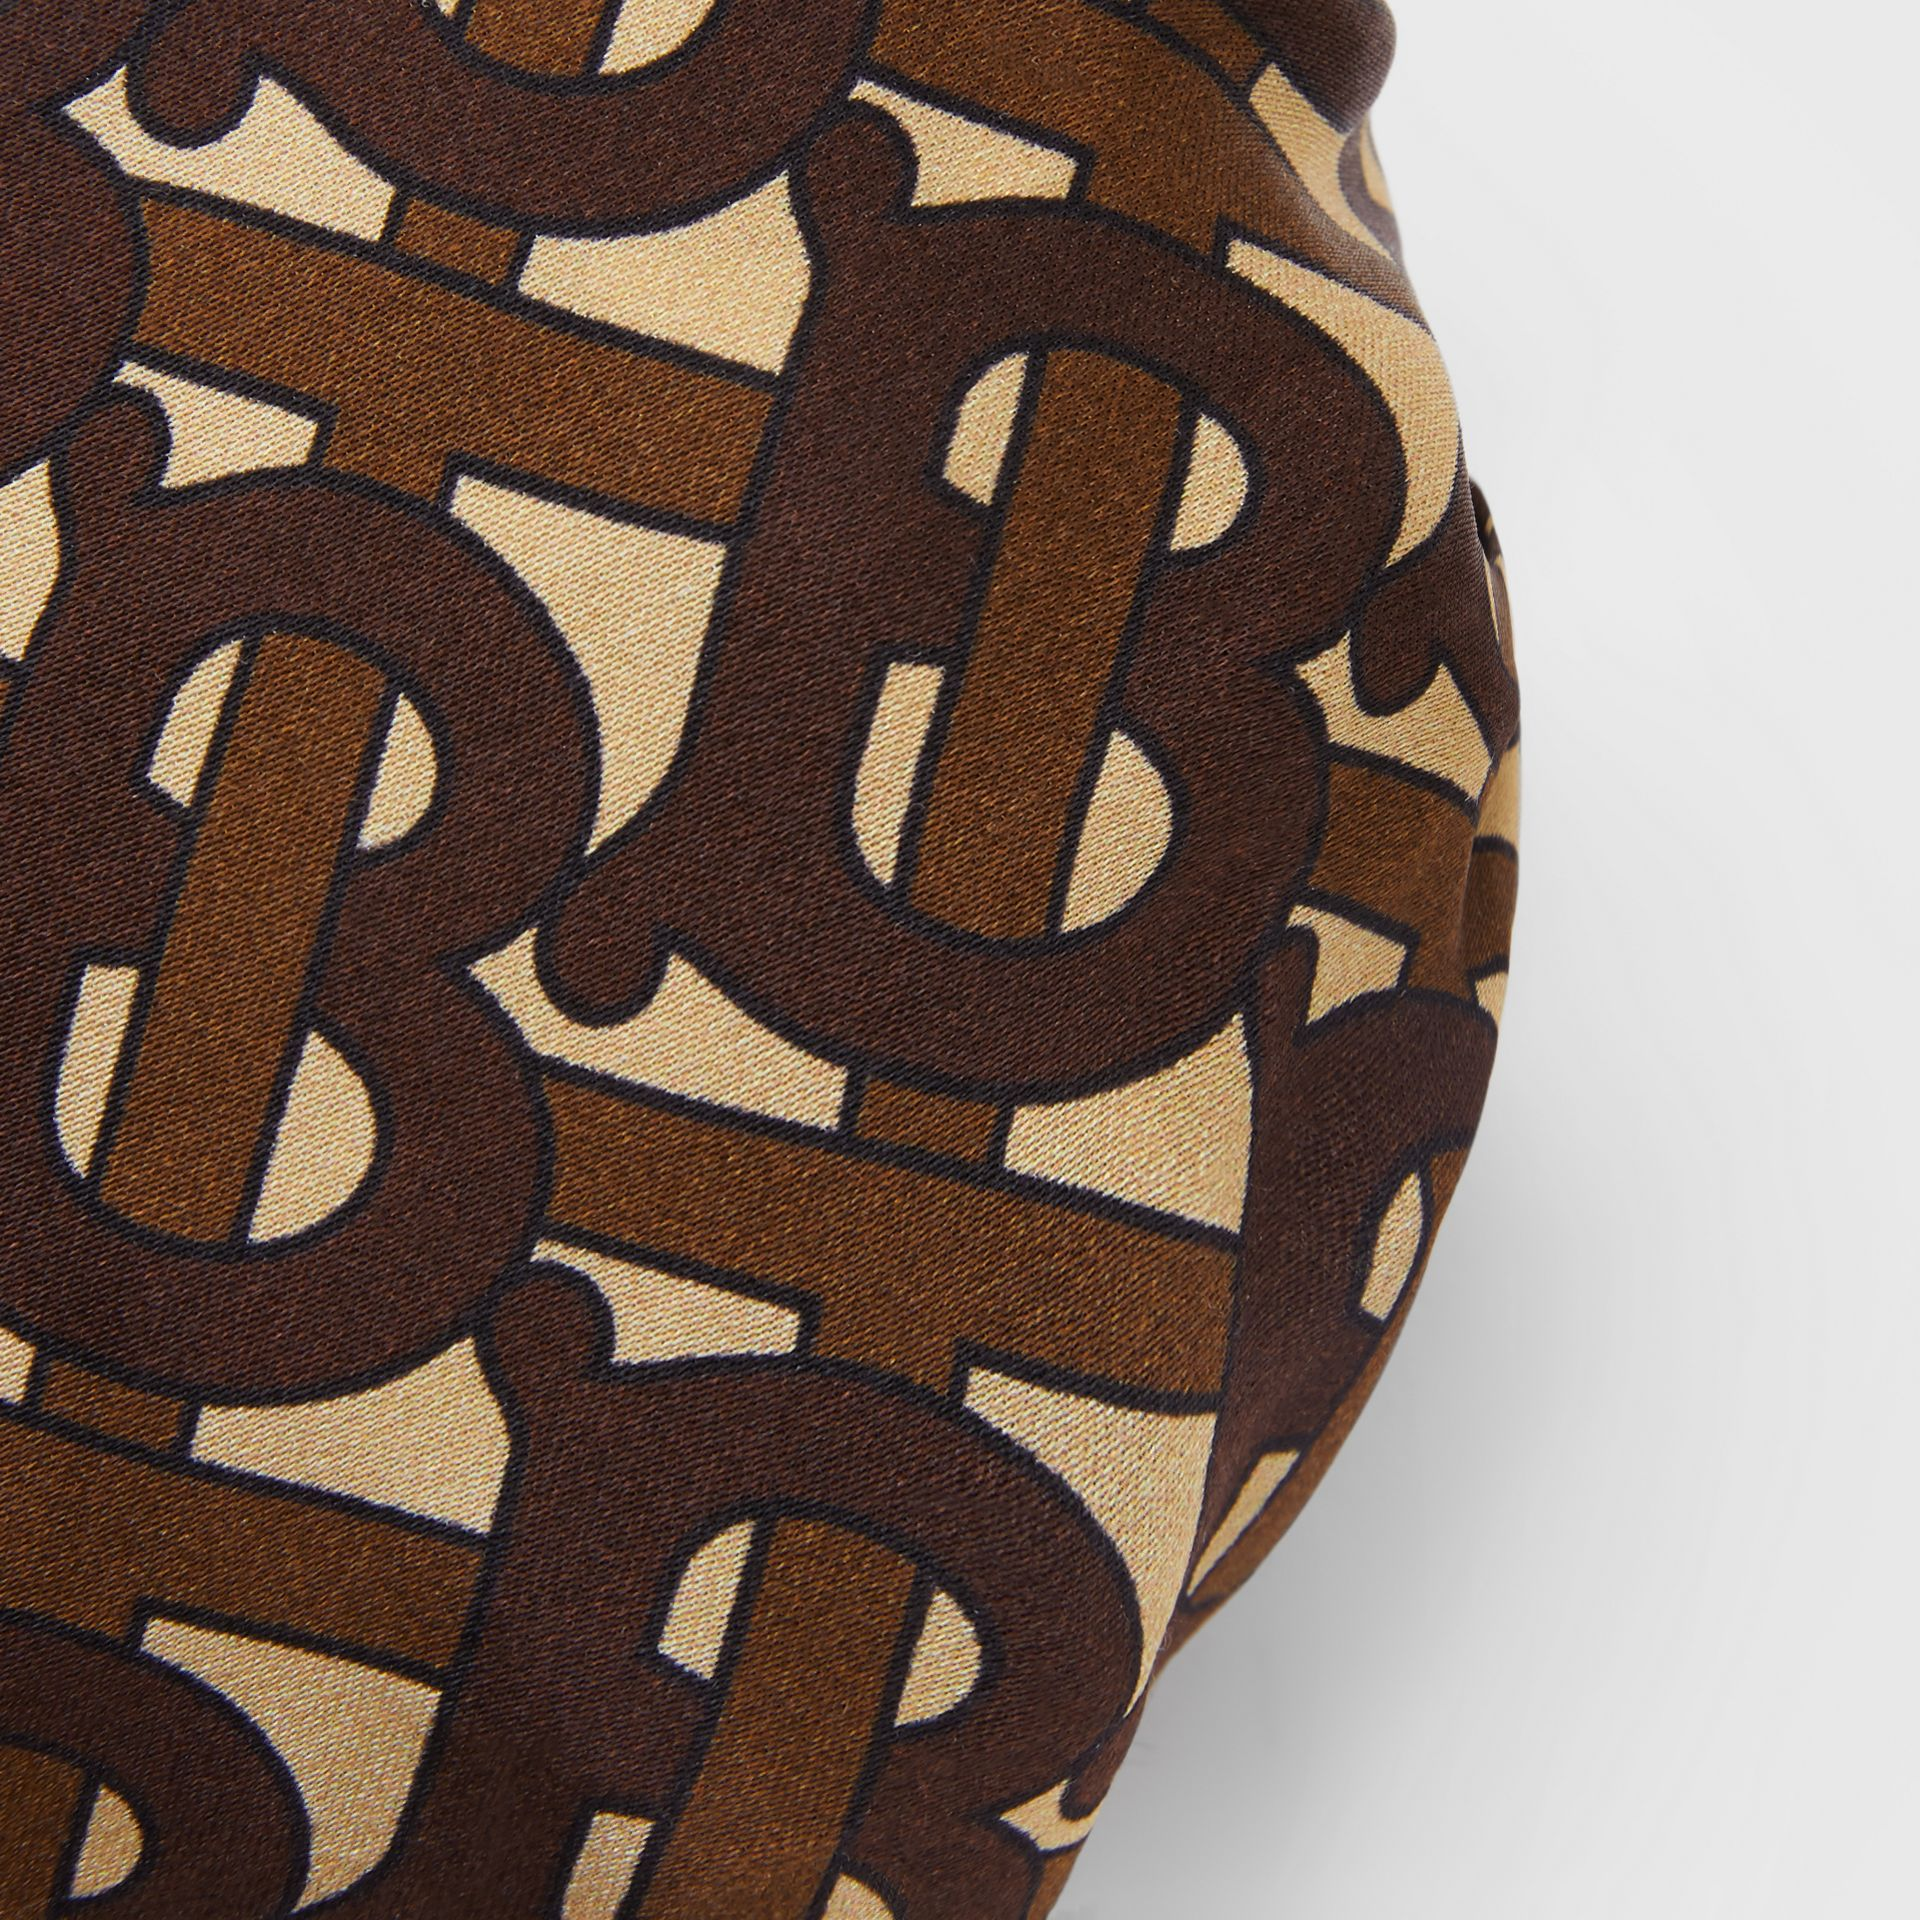 Monogram Print Silk Chignon Cover in Brown - Women | Burberry - gallery image 1